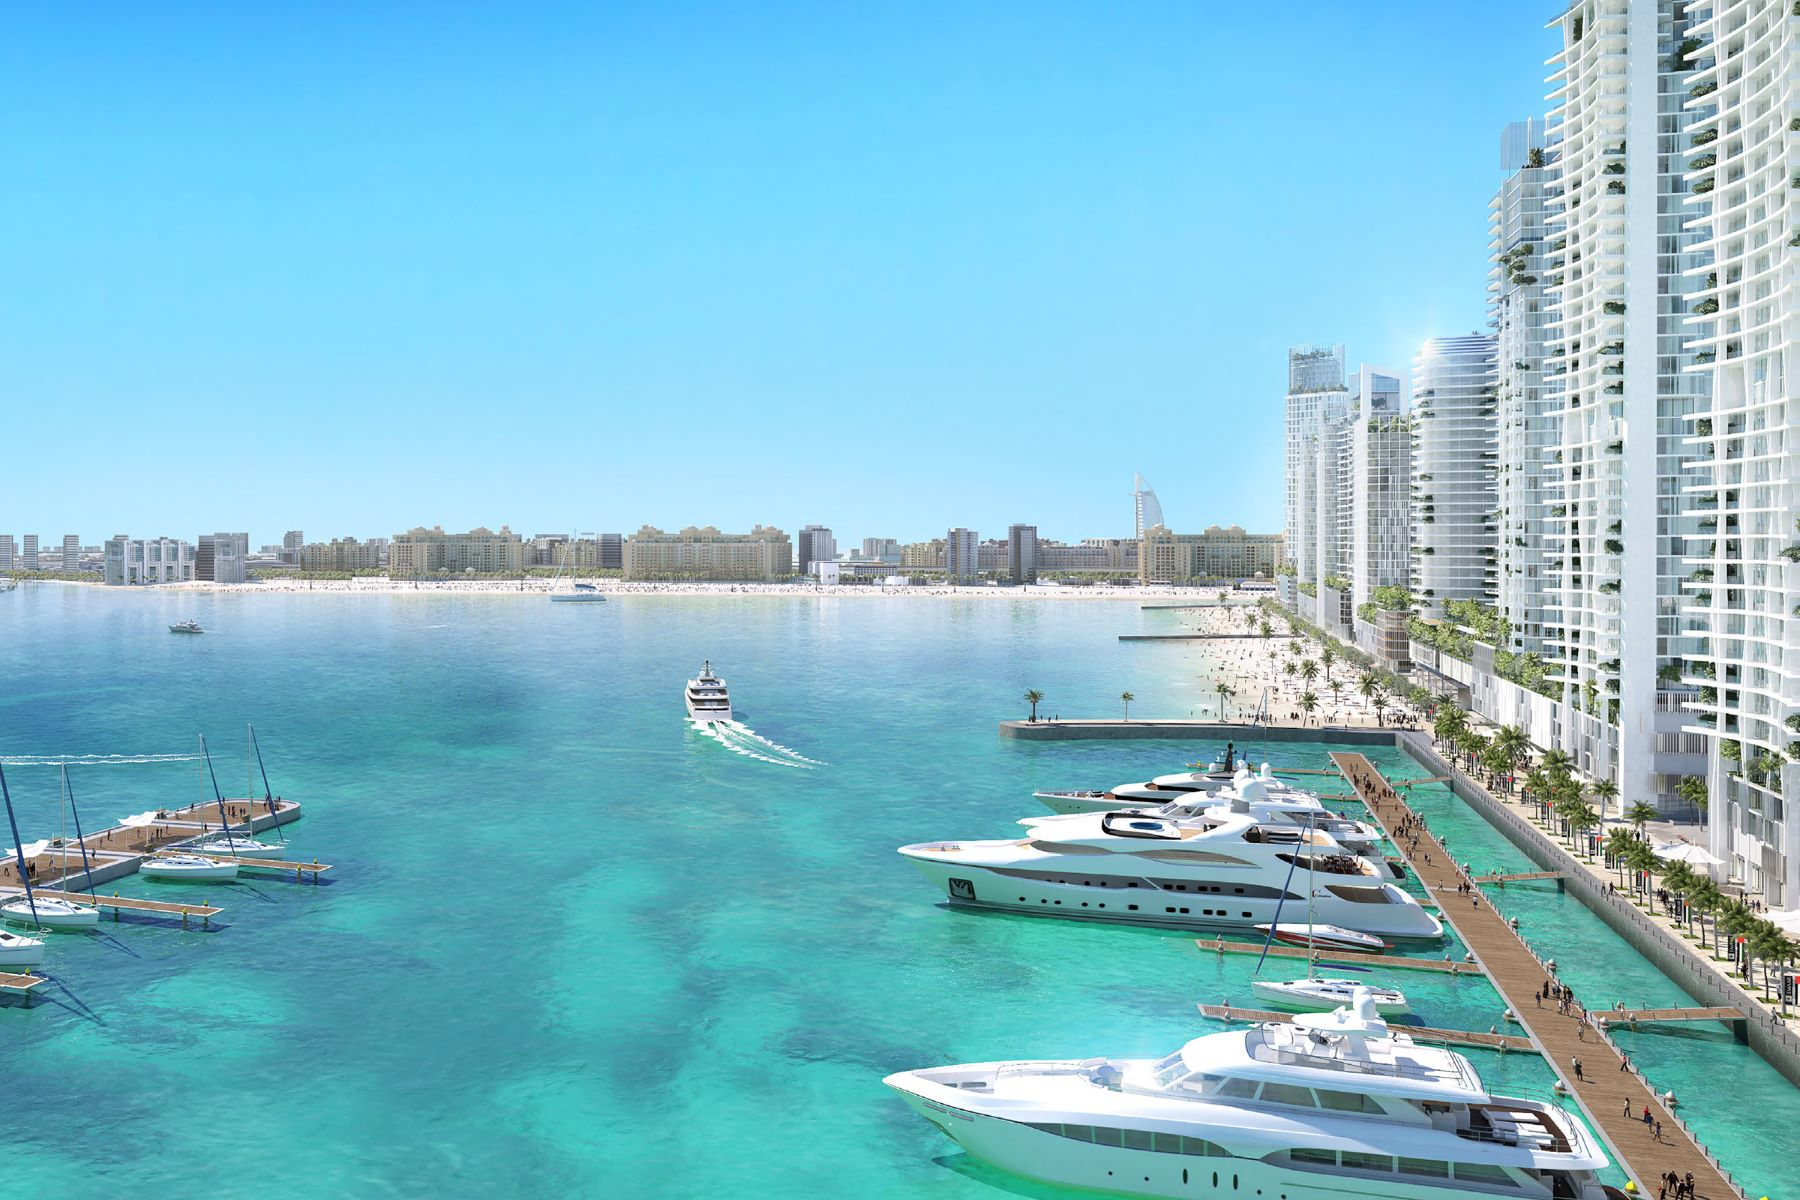 Flat for Sale at Tower 2 Beach Vista 3 Bedroom Full Sea Views Dubai Harbour Beach Vista Tower 2 Dubai, Dubai 00000 United Arab Emirates